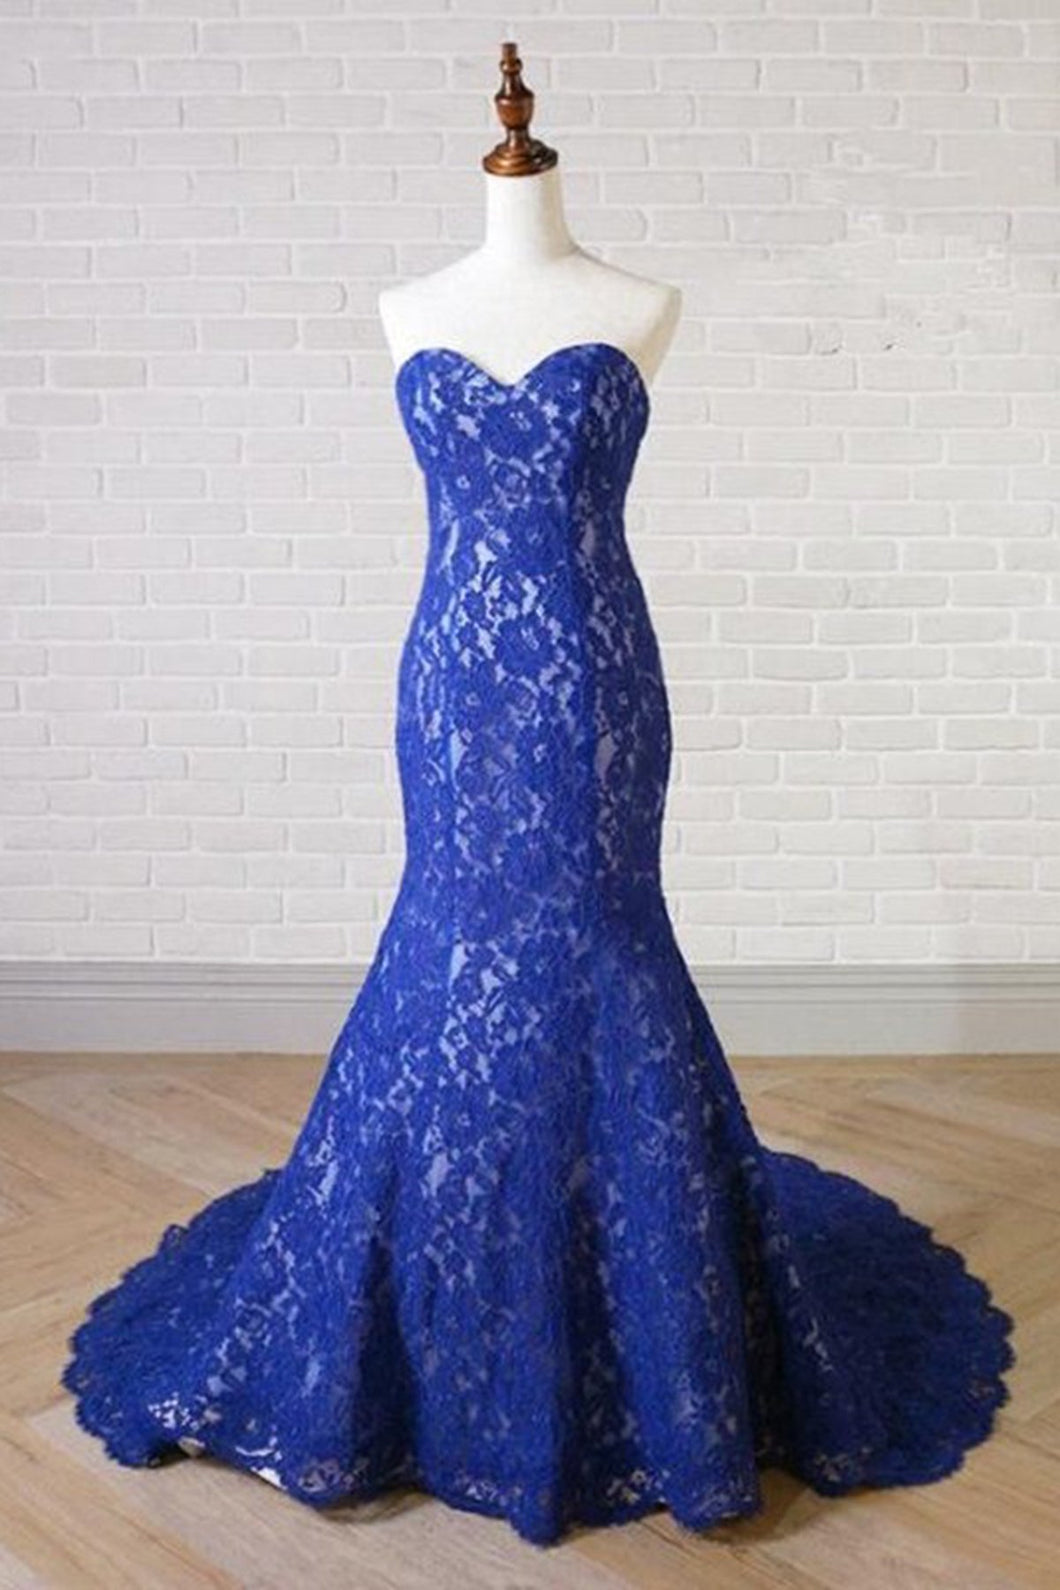 2019 Prom Dresses | 2019 Sweetheart Neck Royal Blue Lace Long Mermaid Prom Dress